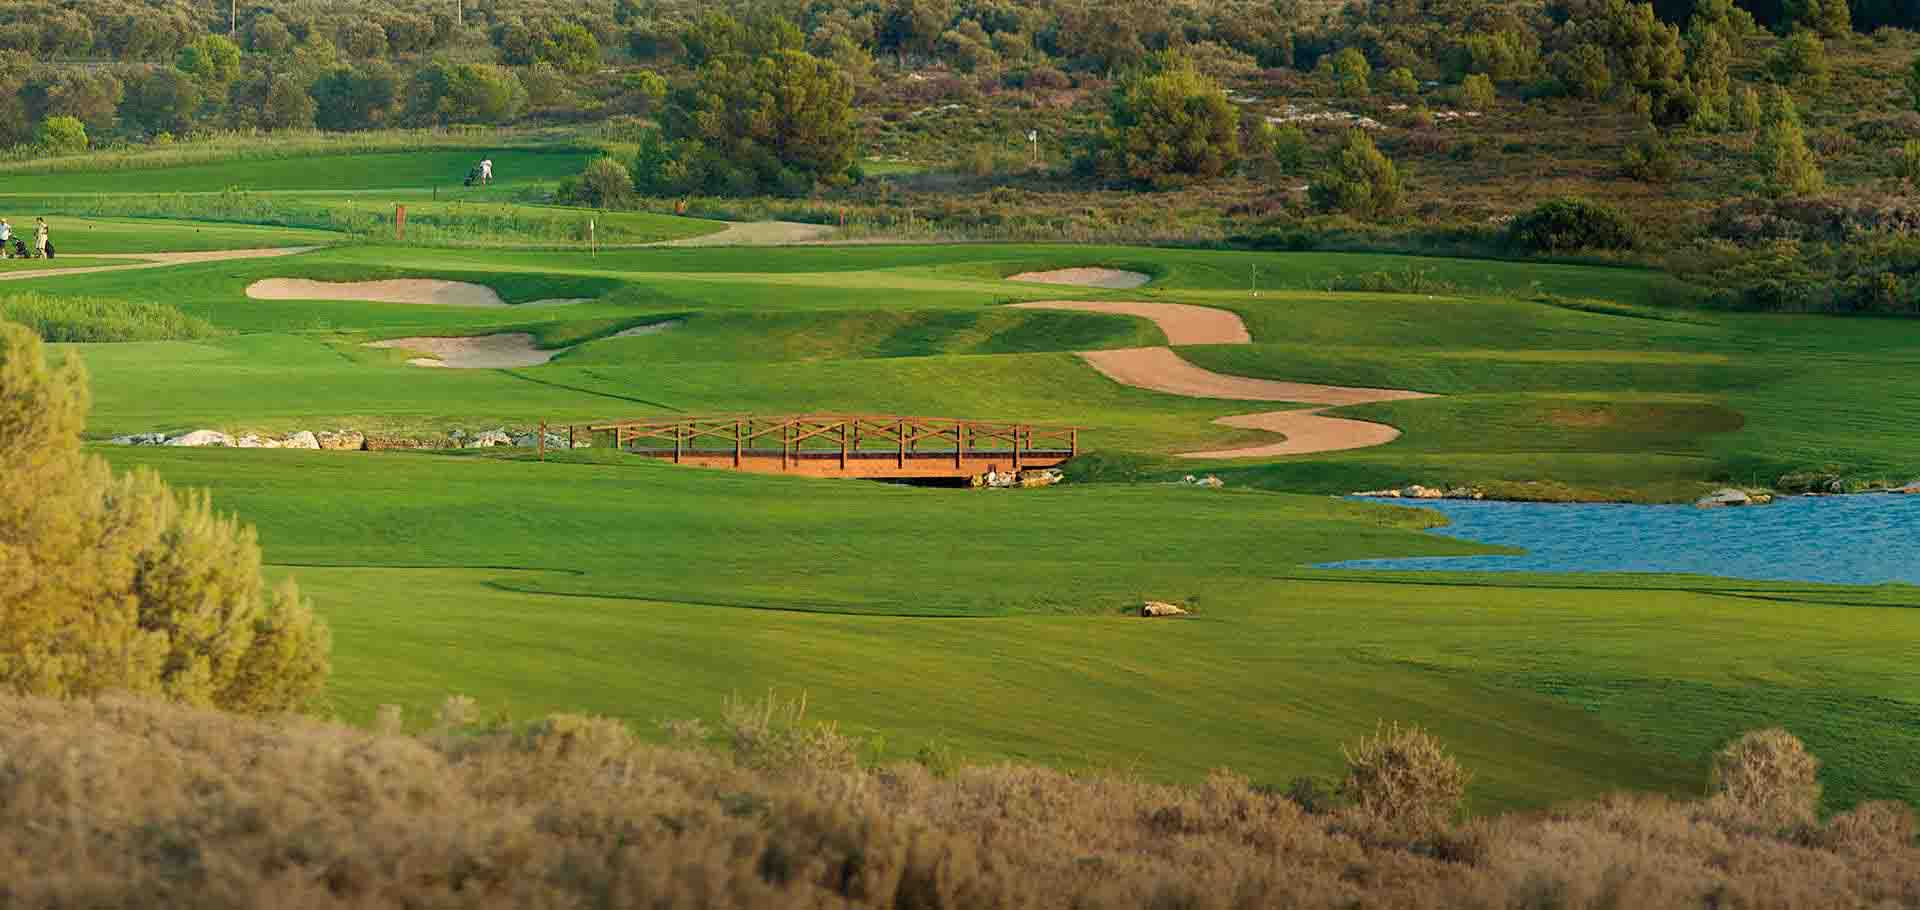 acaya-golf-resort-&-SPA-a-Lecce